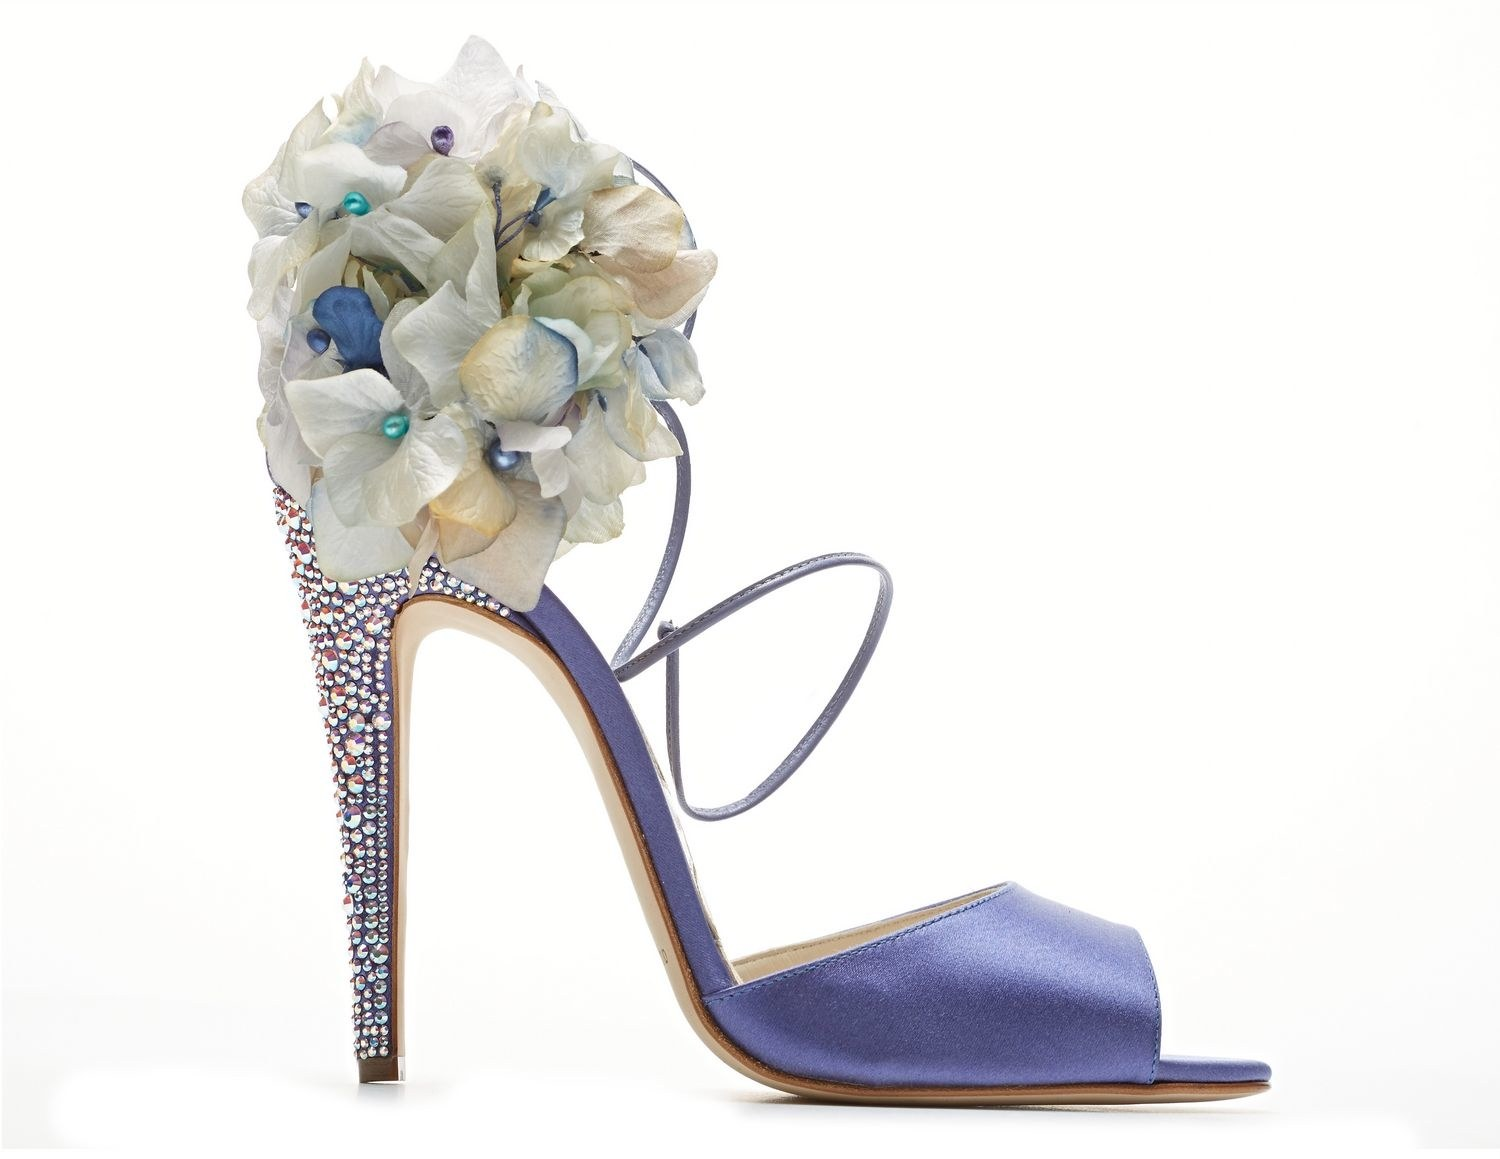 c740198d243 Image Source  Sky High Shoes by Brian Atwood